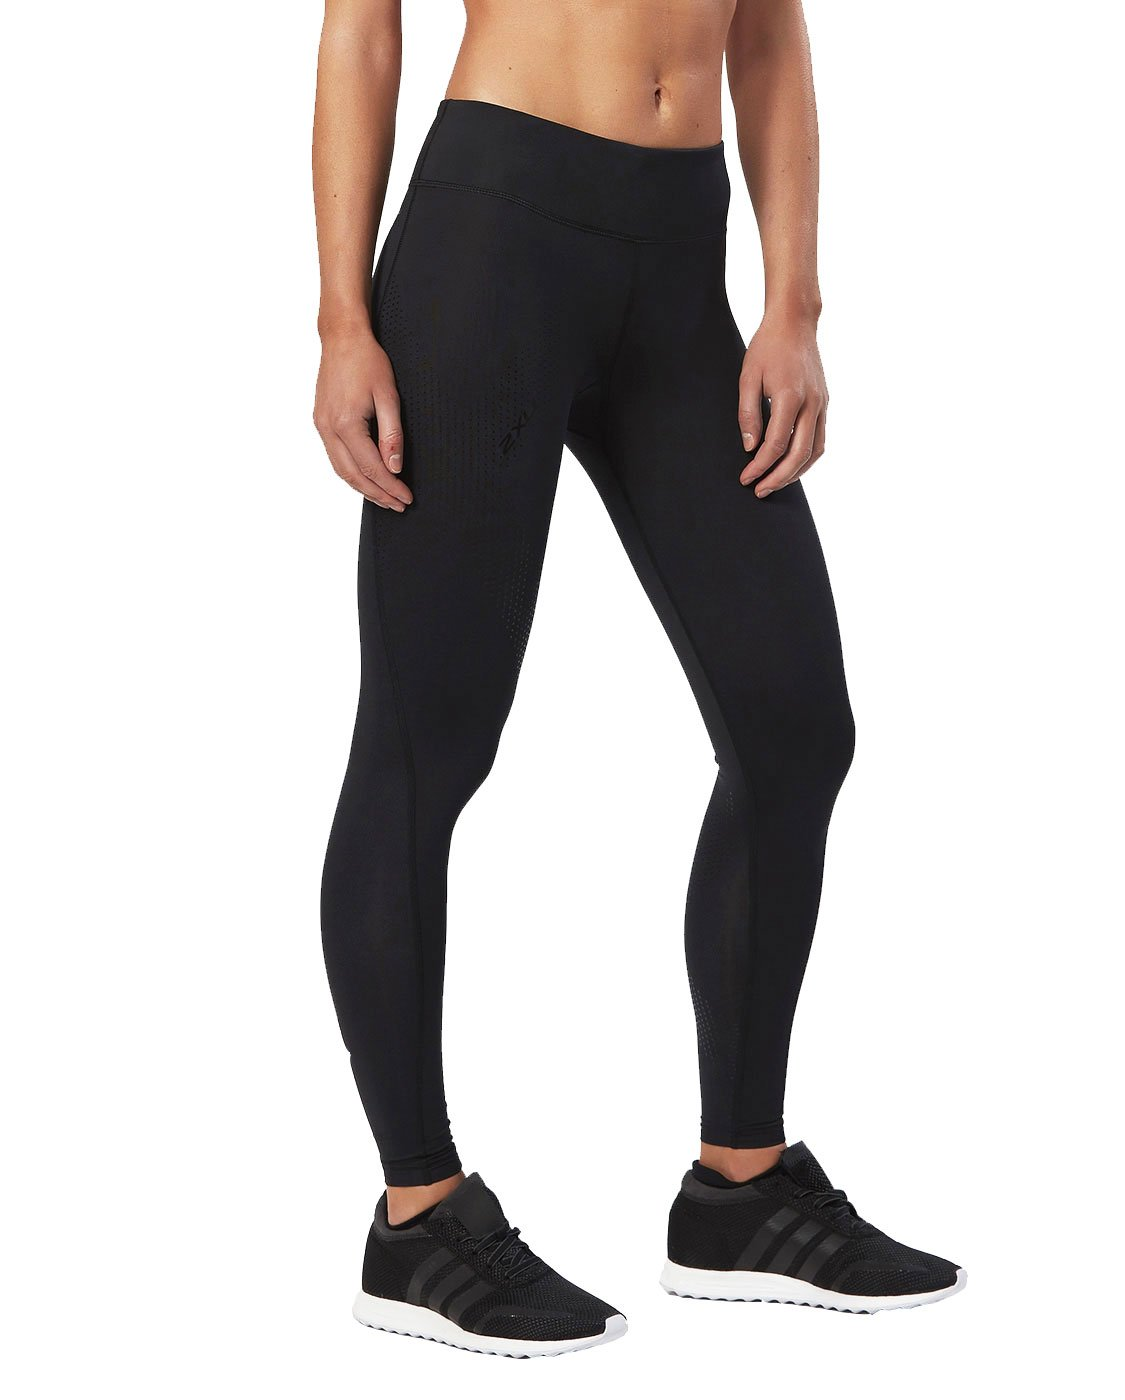 2XU Women's Mid-Rise Compression Tights, Black/Dotted Black Logo, X-Small